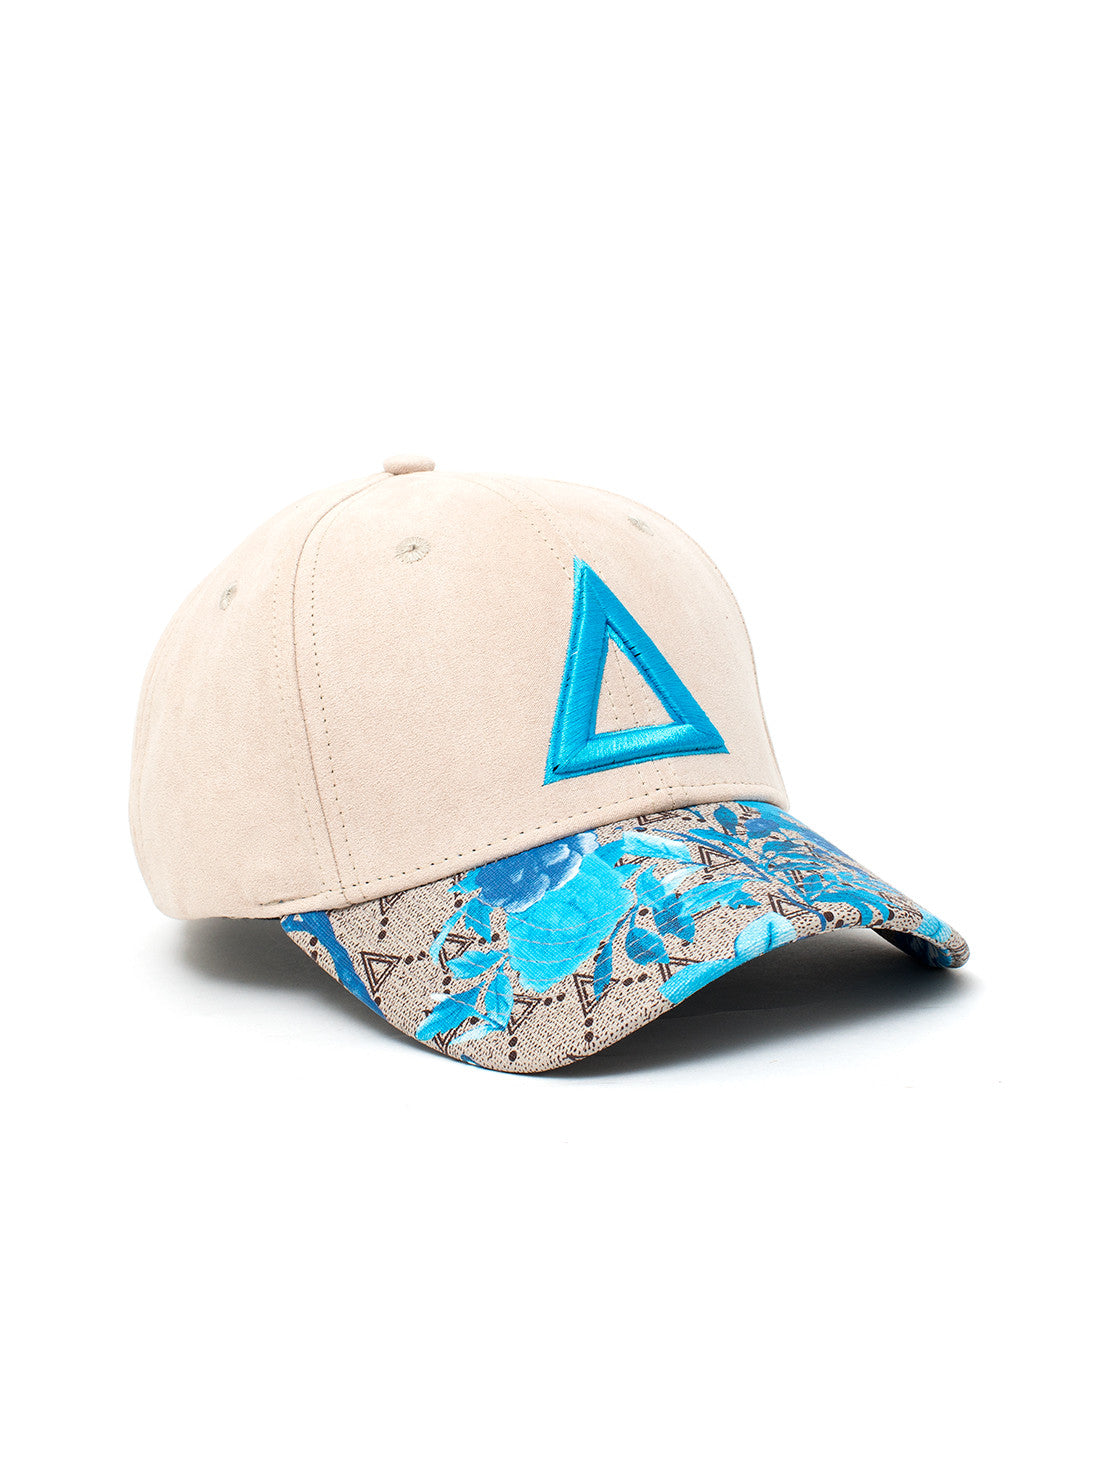 LIMITED BIRD/FLOWER Blue TRISWAG - Triangulo Swag